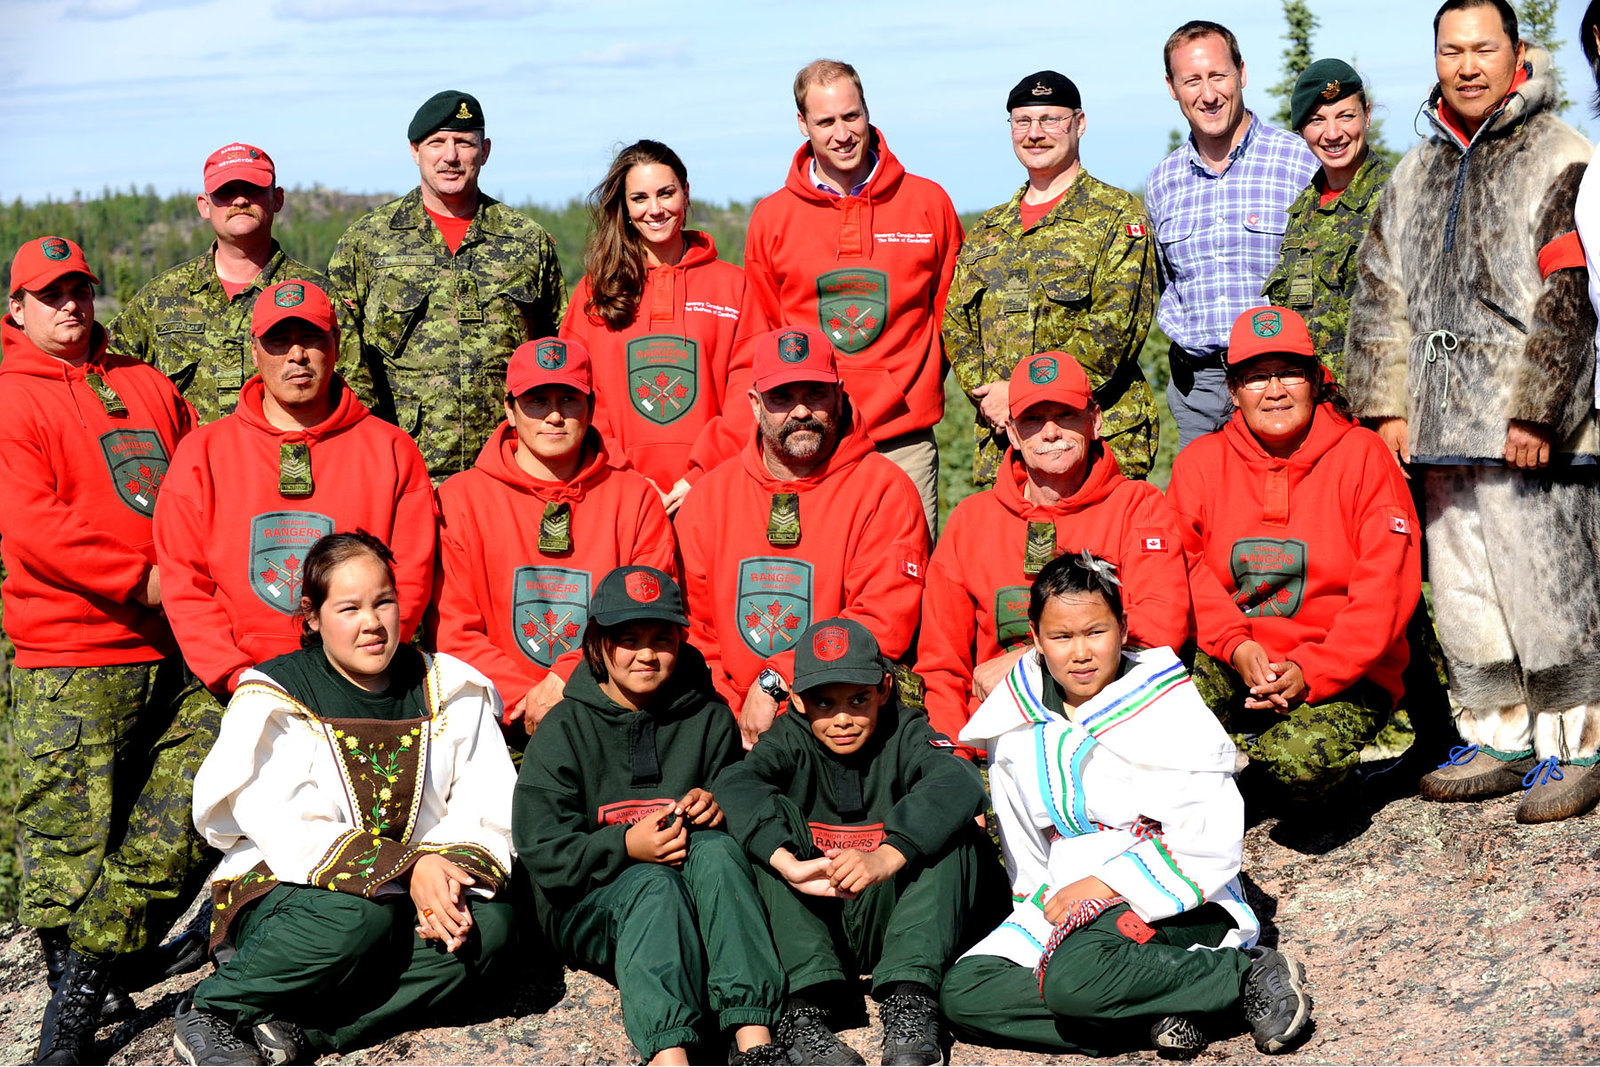 The Duke and Duchess of Cambridge with Canadian rangers during canada tour in 2011